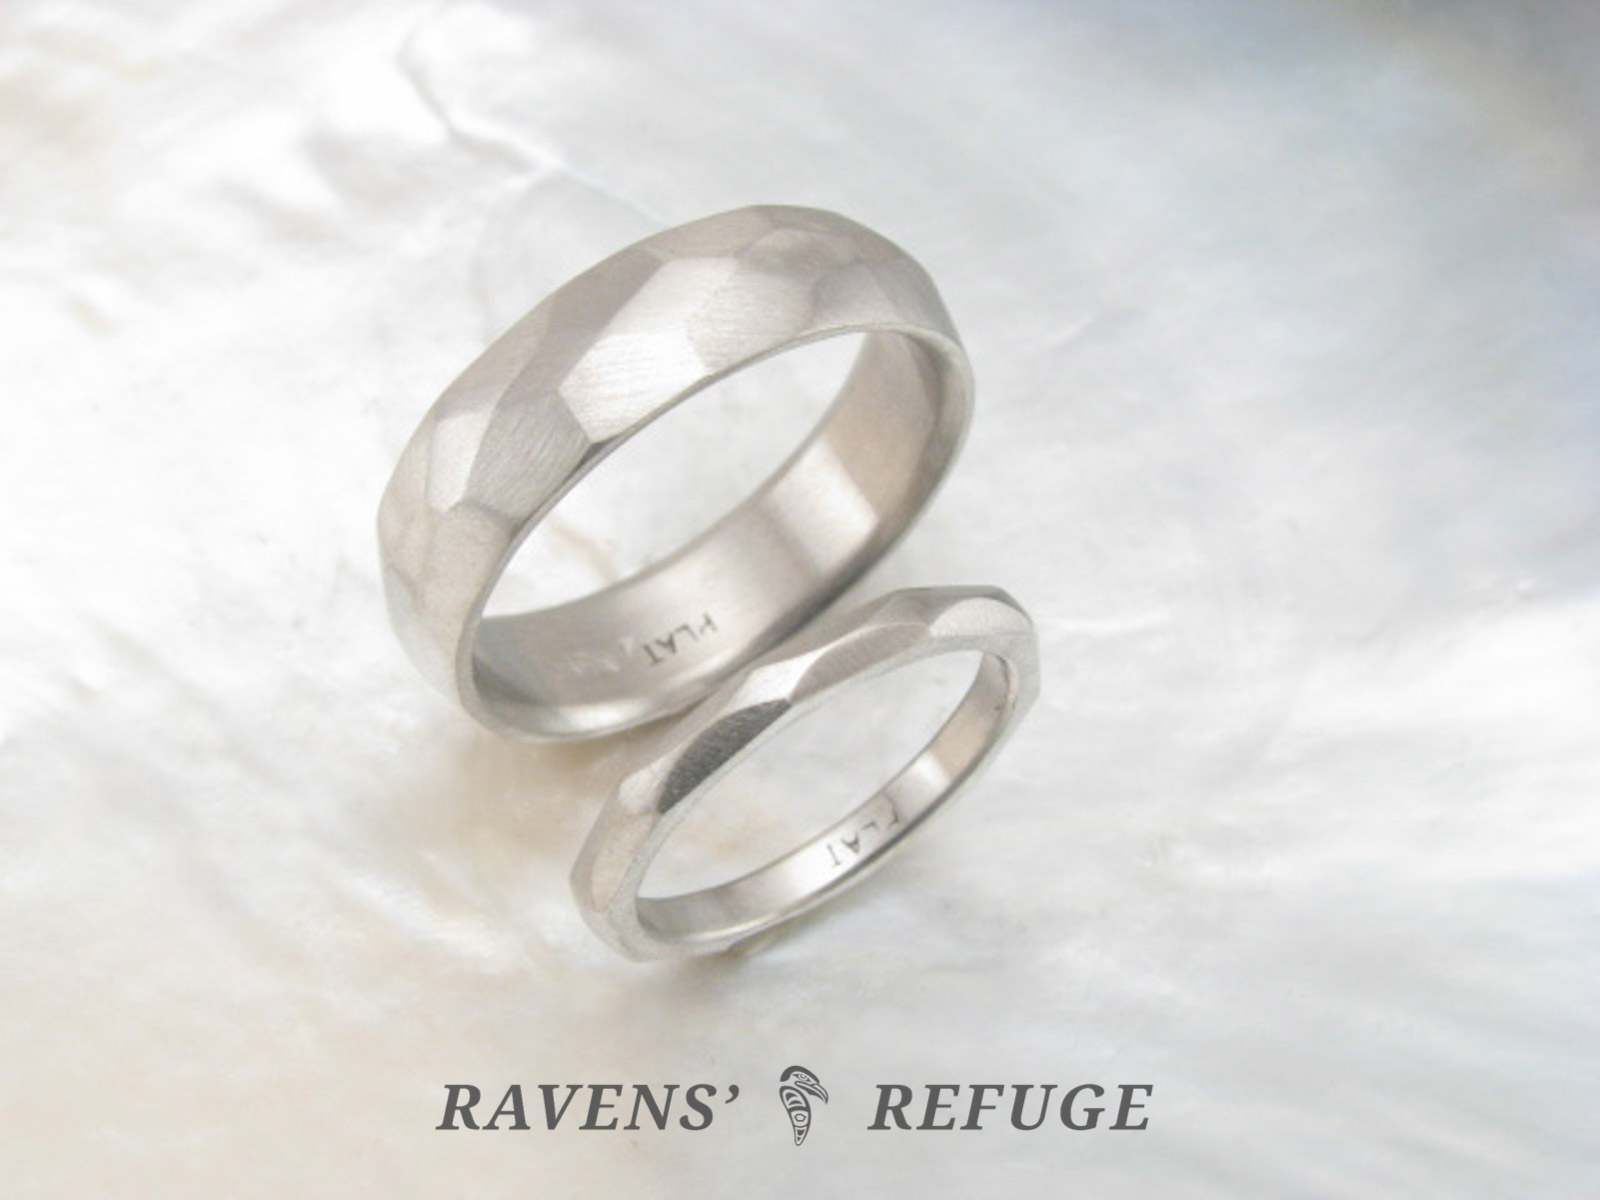 It is a graphic of hand forged platinum wedding band set, his and hers artisan wedding rings